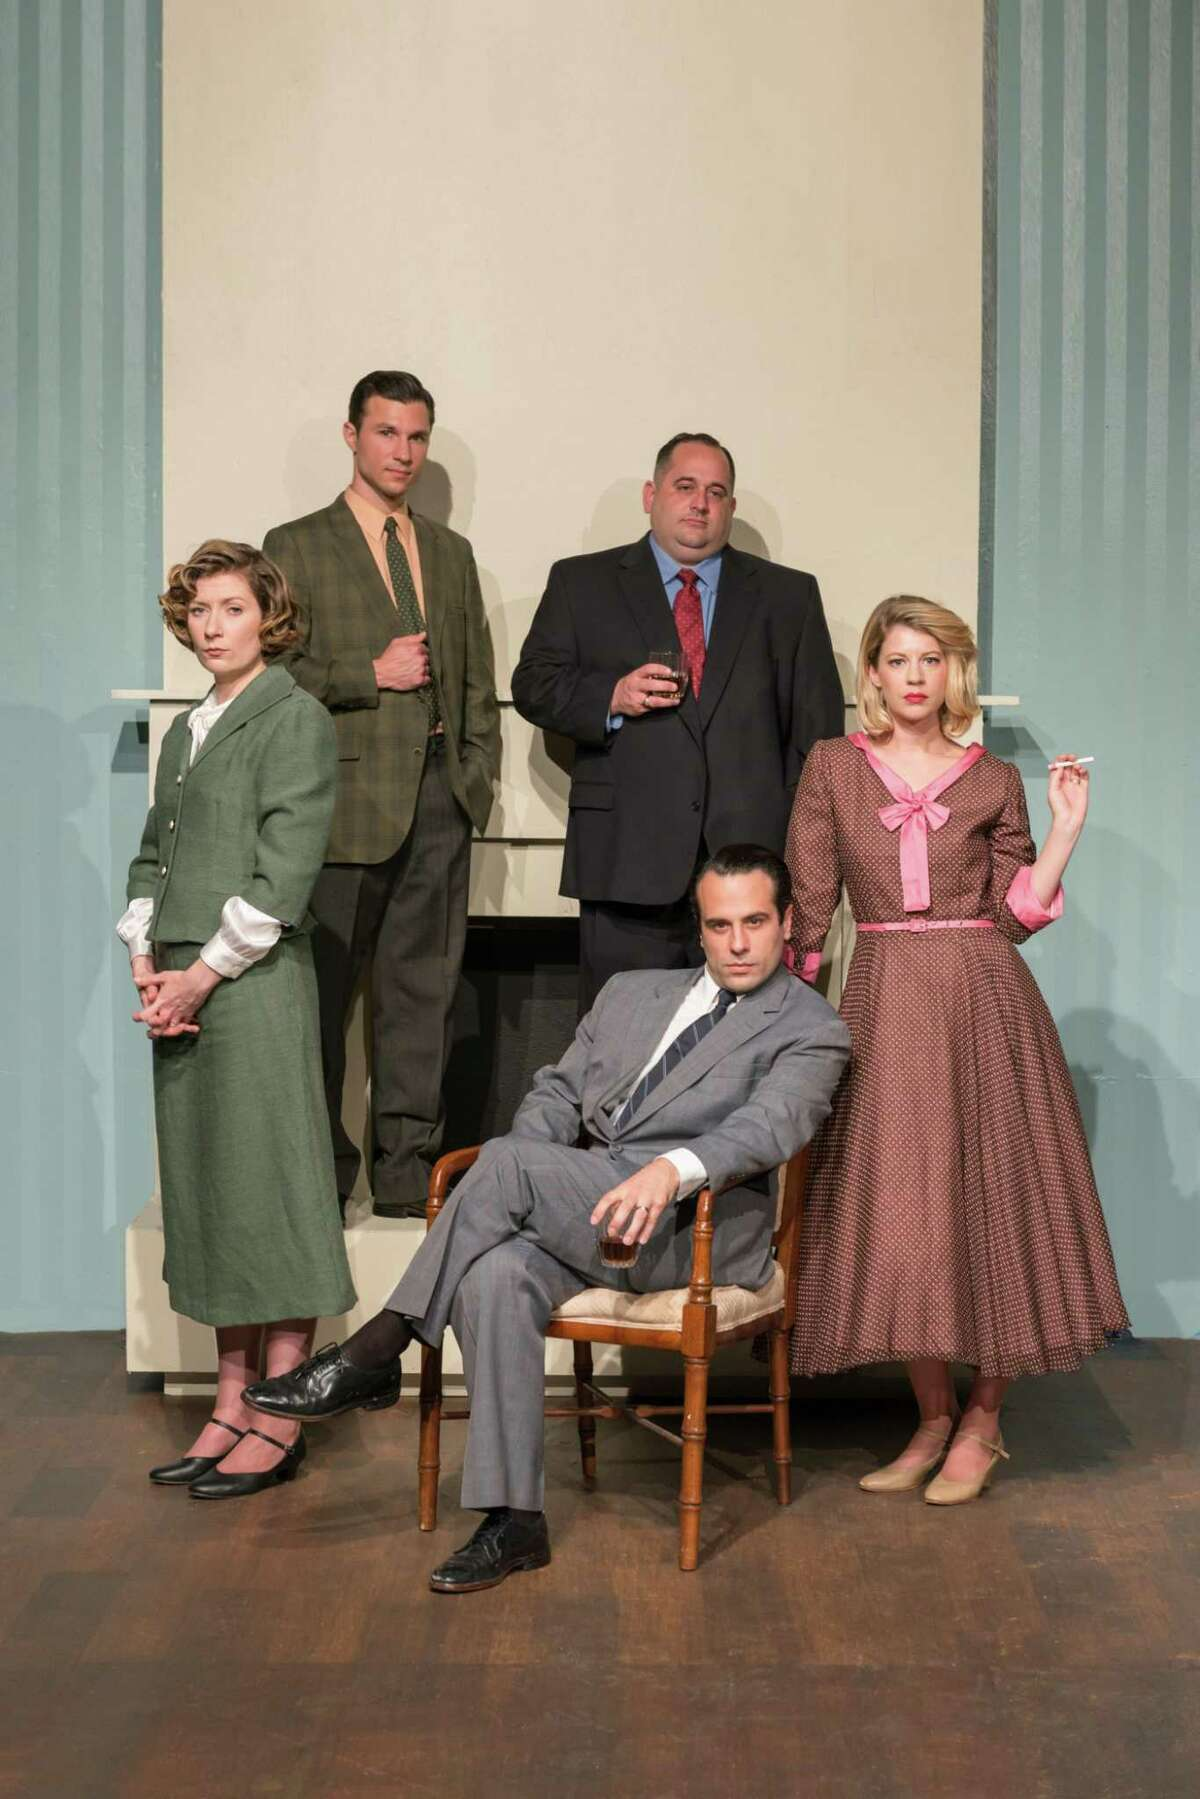 """Classic Theatre's production of """"A Doll's House"""" stars Christina Casella (clockwise from left), Zach Lewis, John Boyd, Kacey Roye and Nick Lawson."""